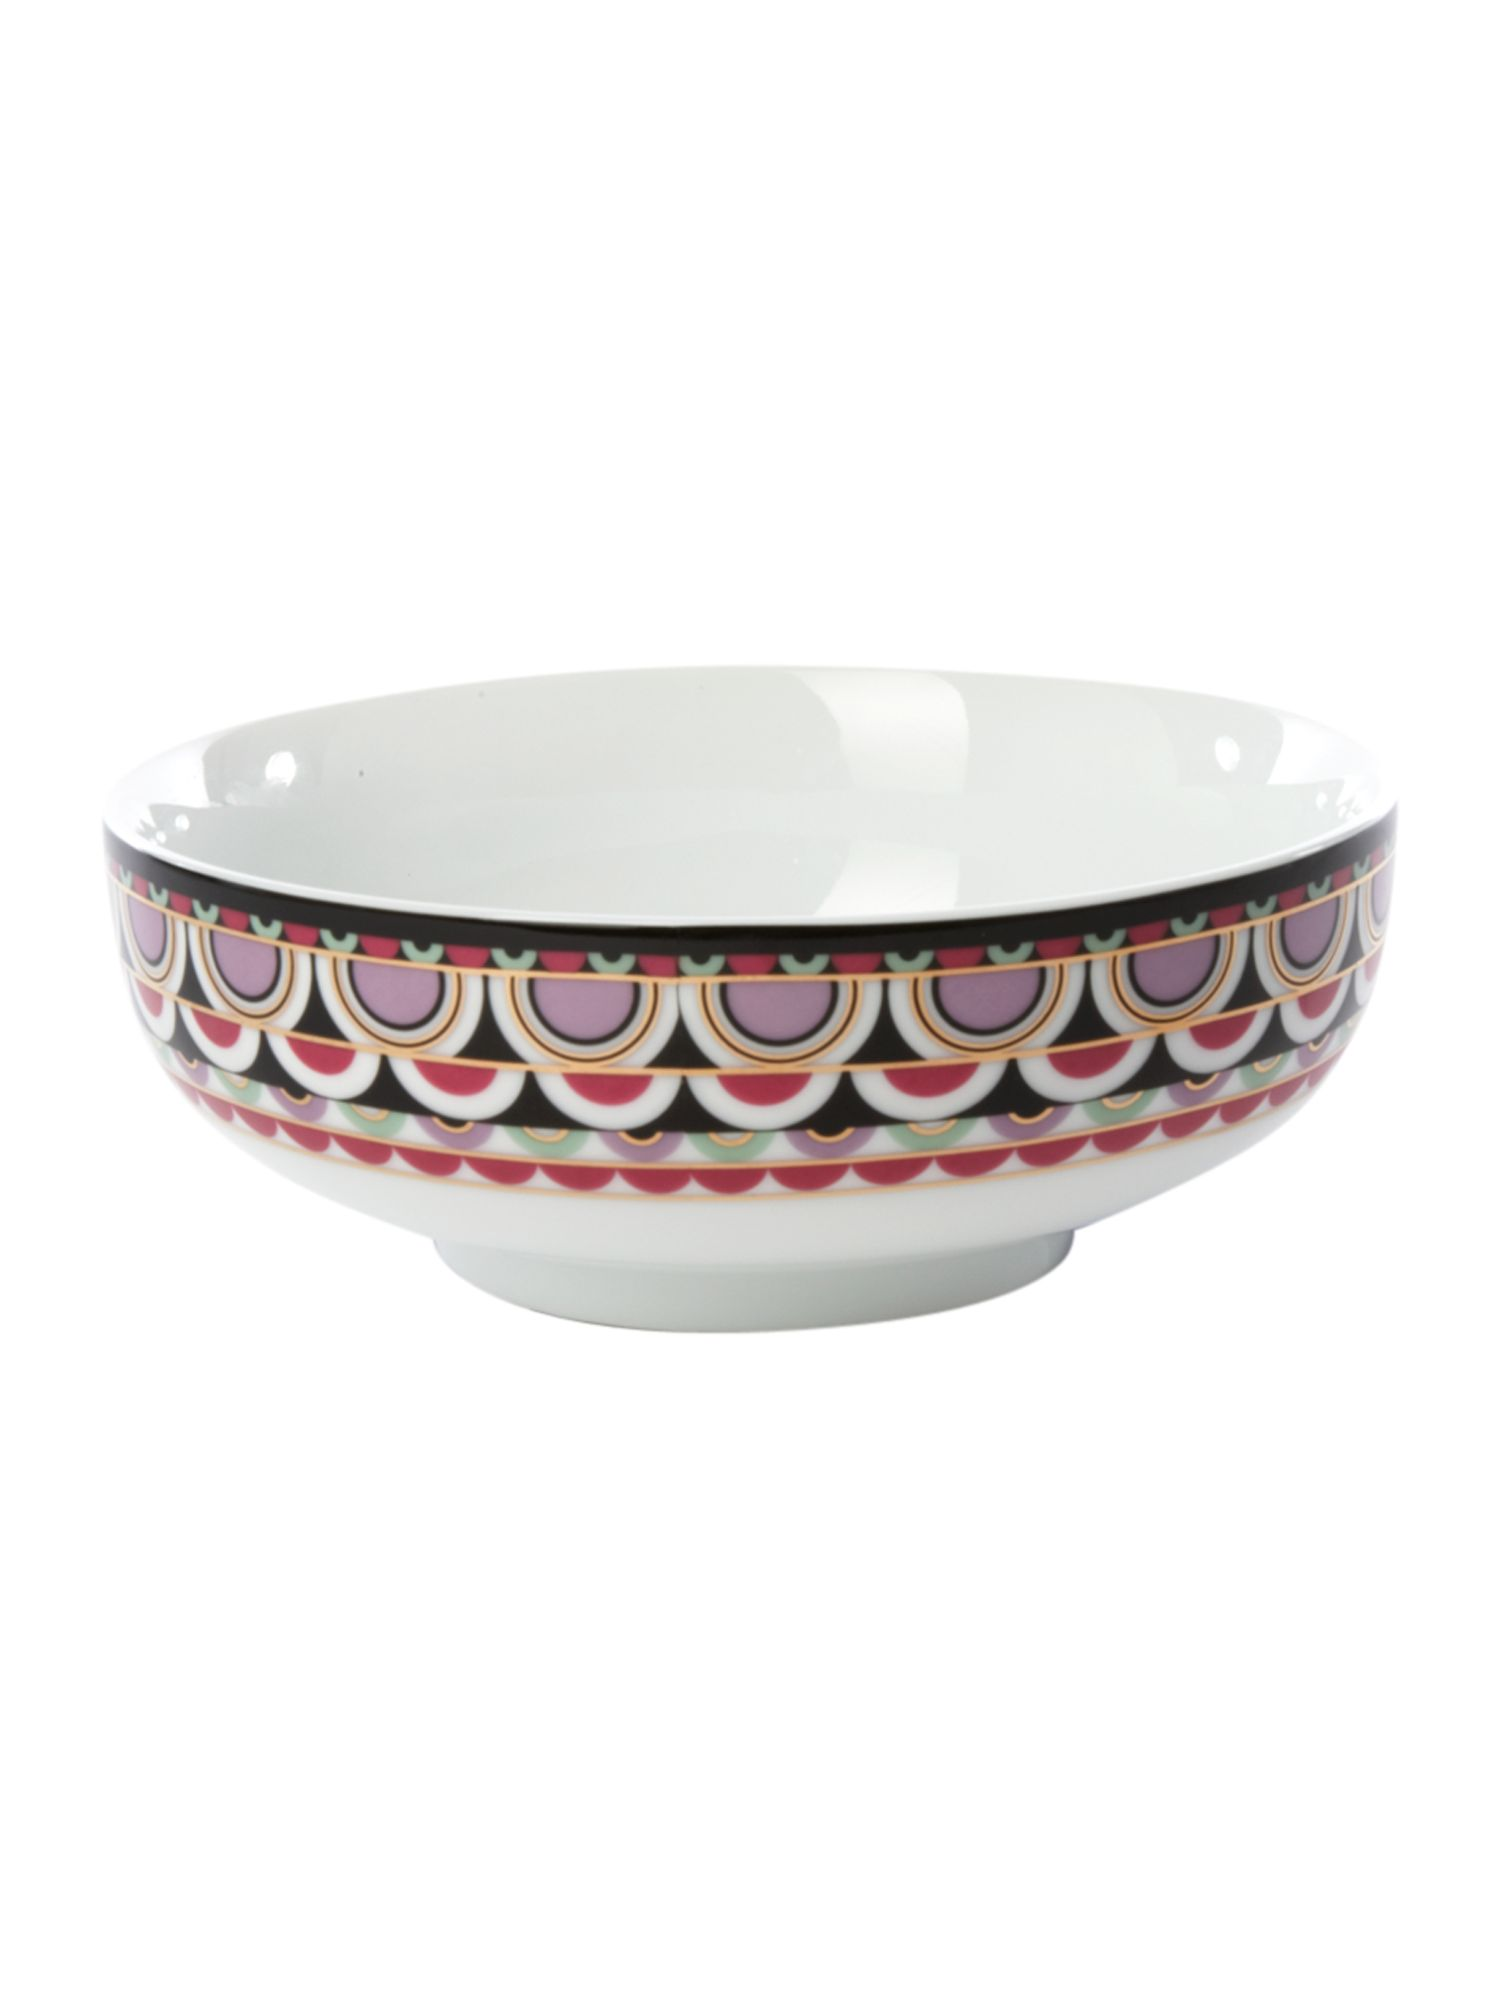 Persia Jewels cereal bowl